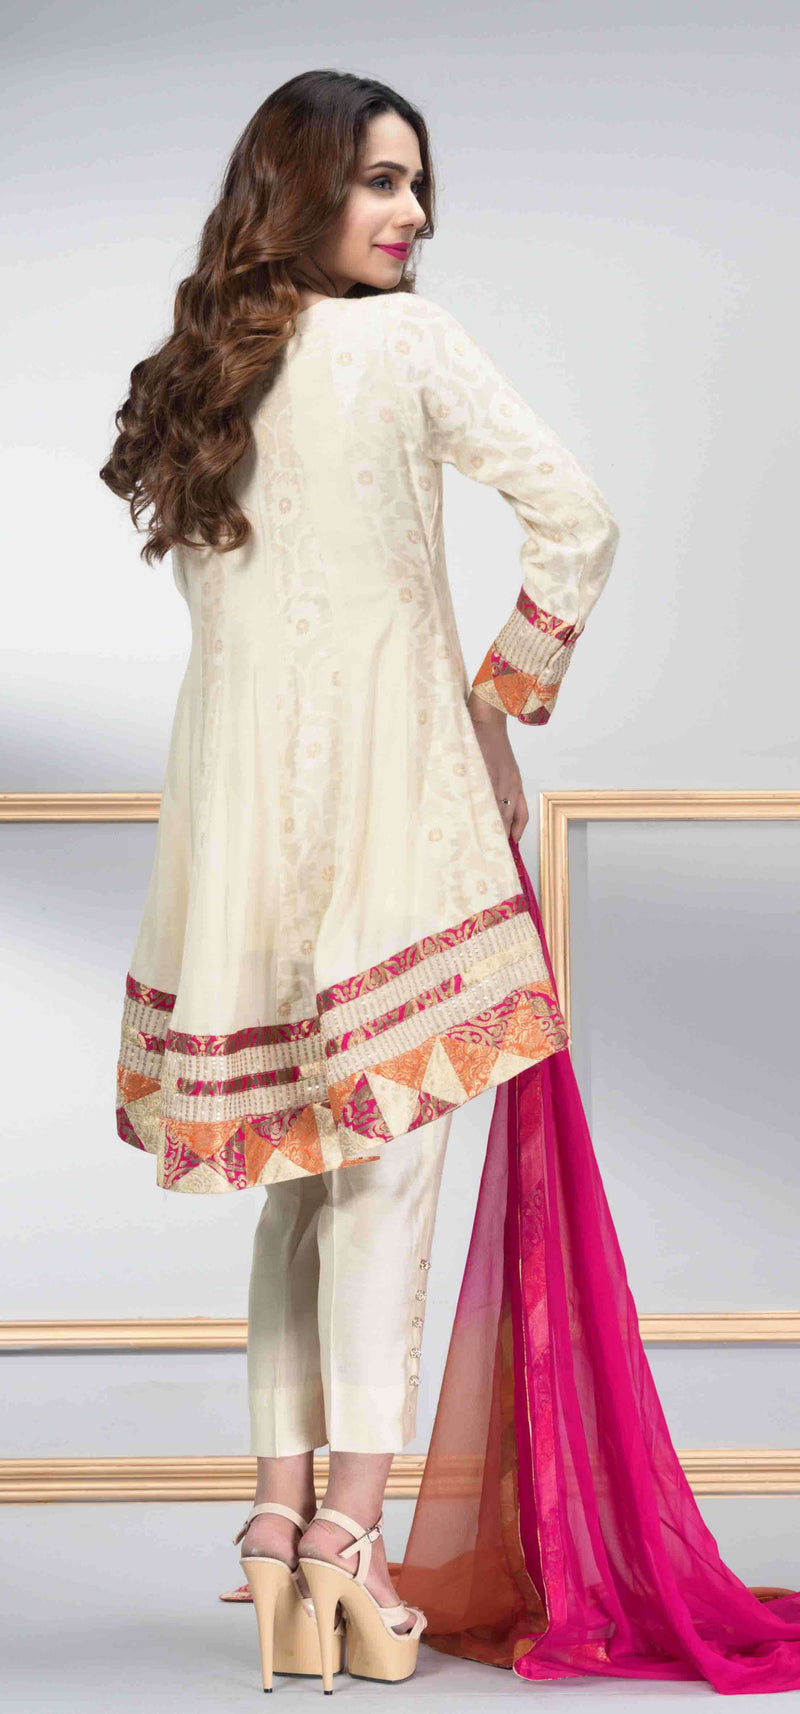 ROYAL WHITE-Phatyma Khan-[Luxury_Pret]-[Pakistani_Fashion_Desginer]-[Women_Fashion_Brand]